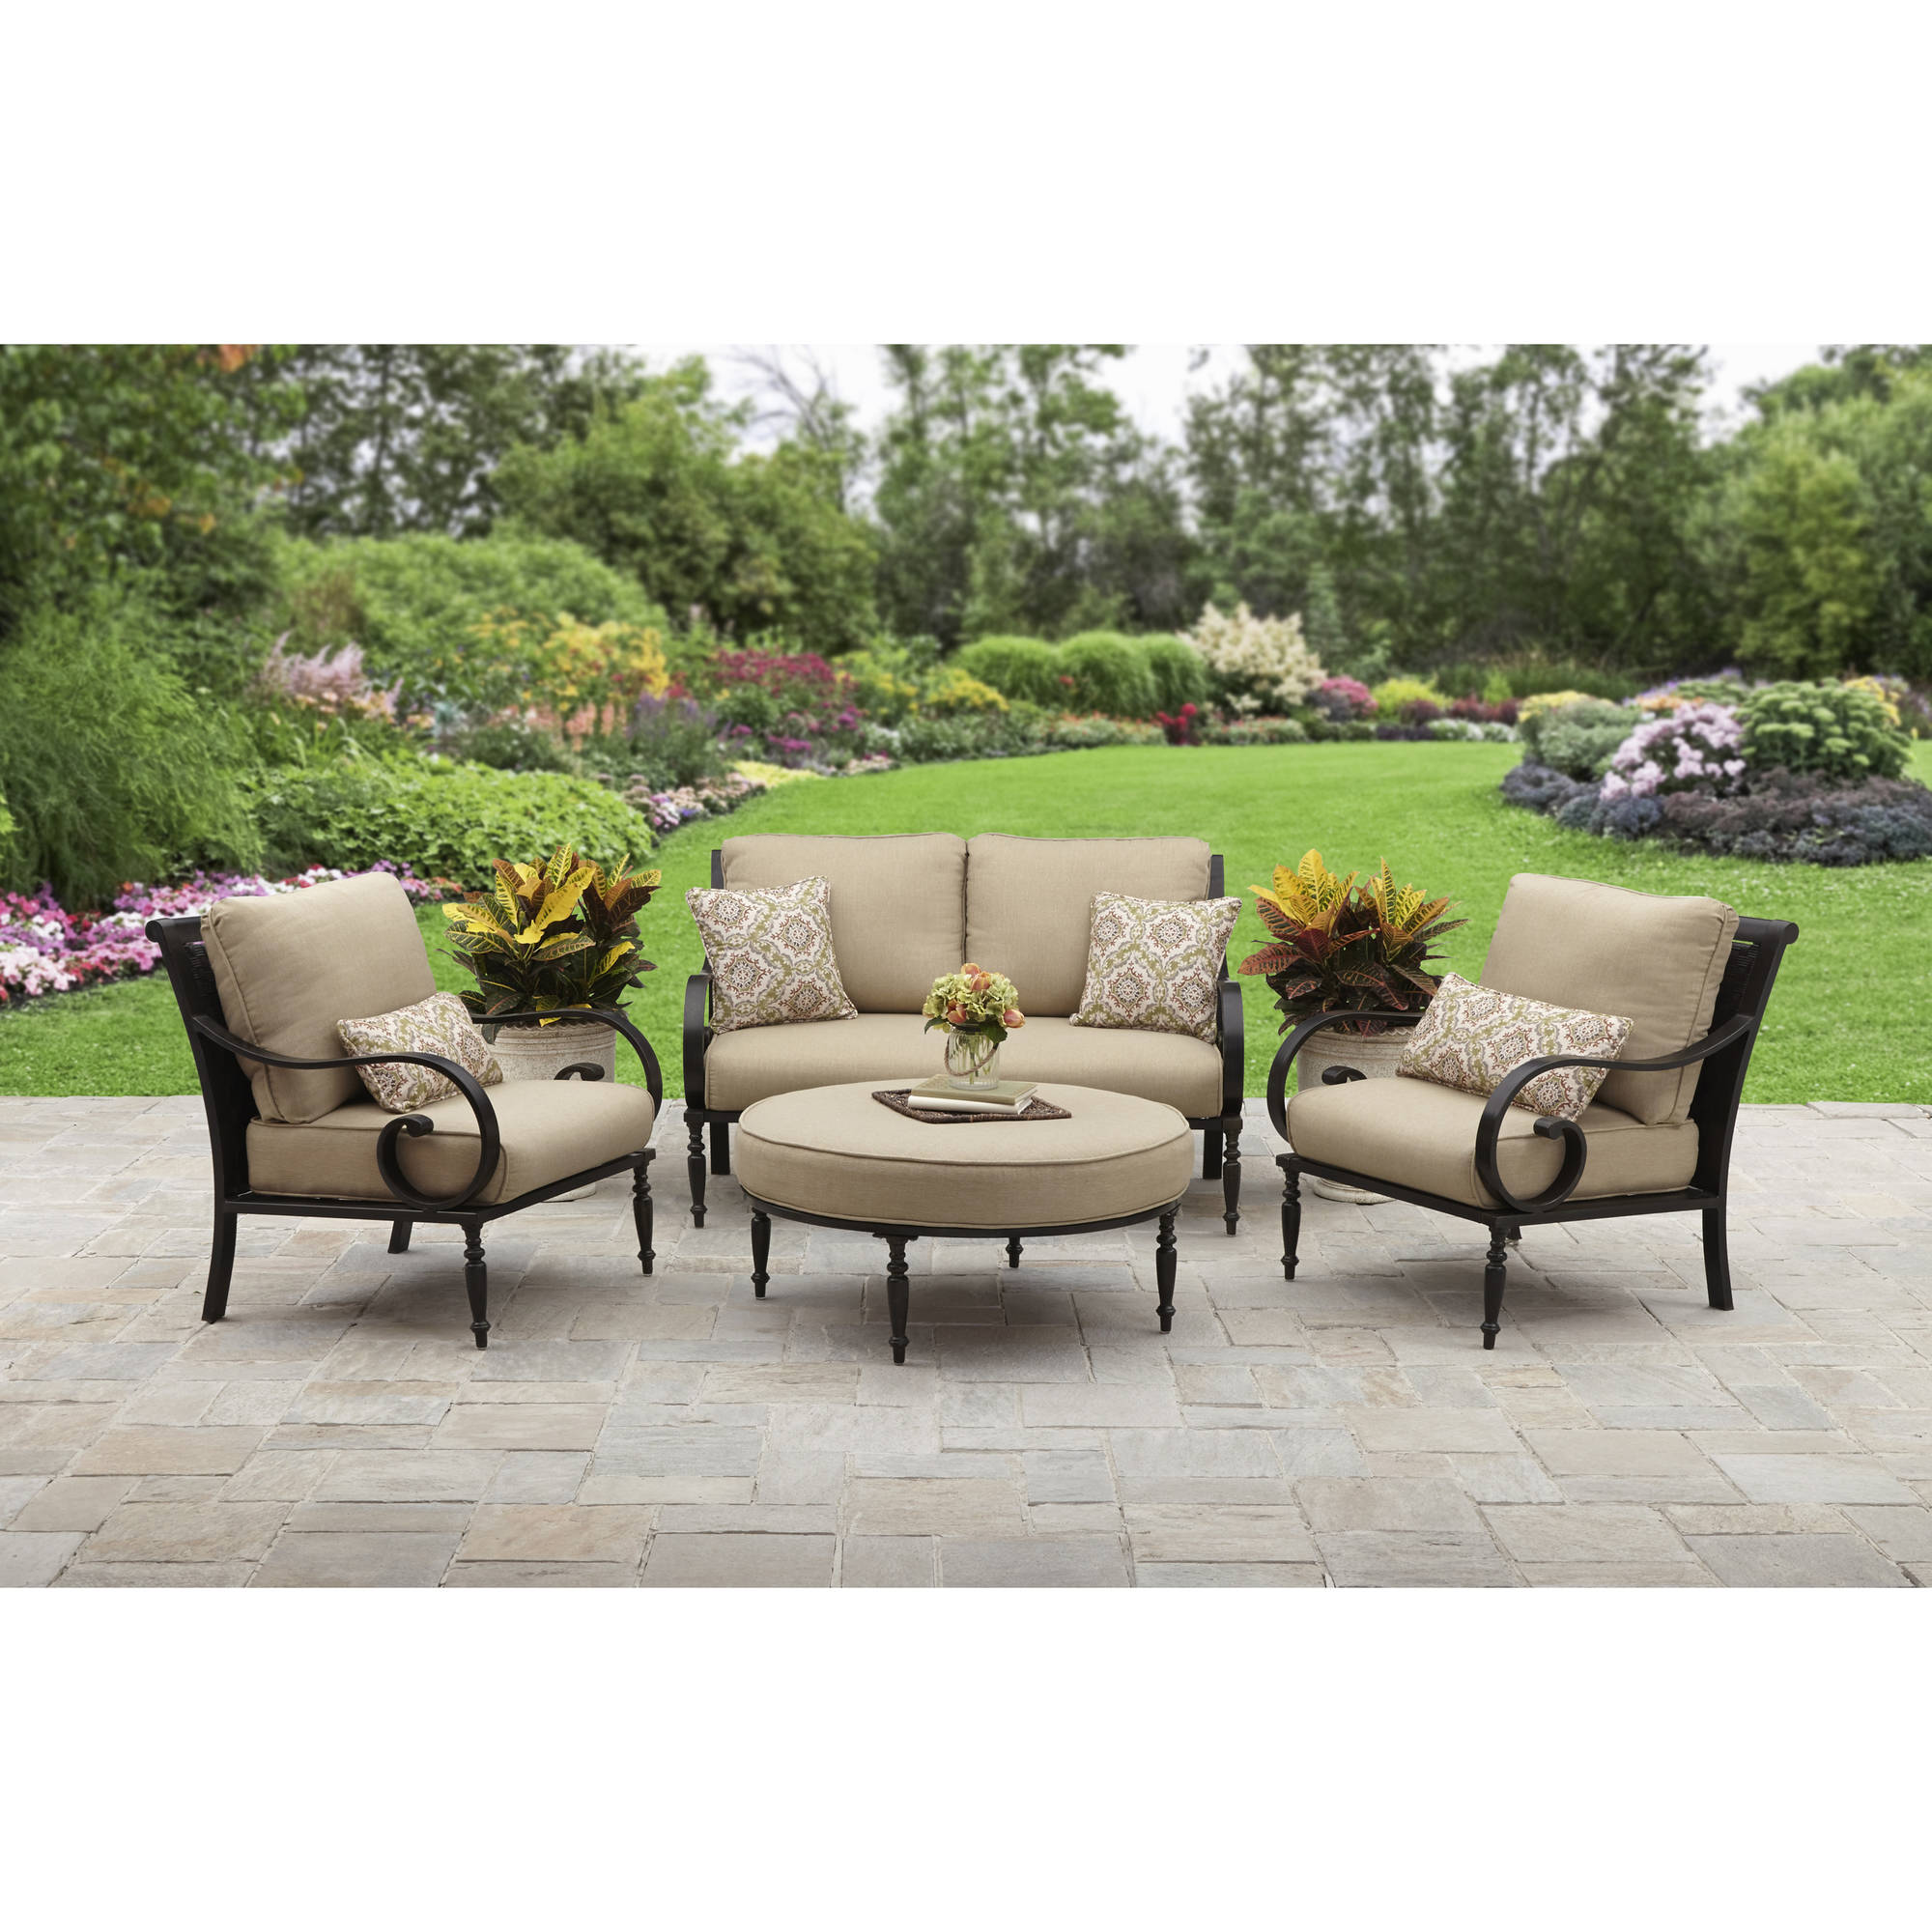 Better Homes And Gardens Englewood Heights II Aluminum 4 Piece Patio  Conversation Set, Seats